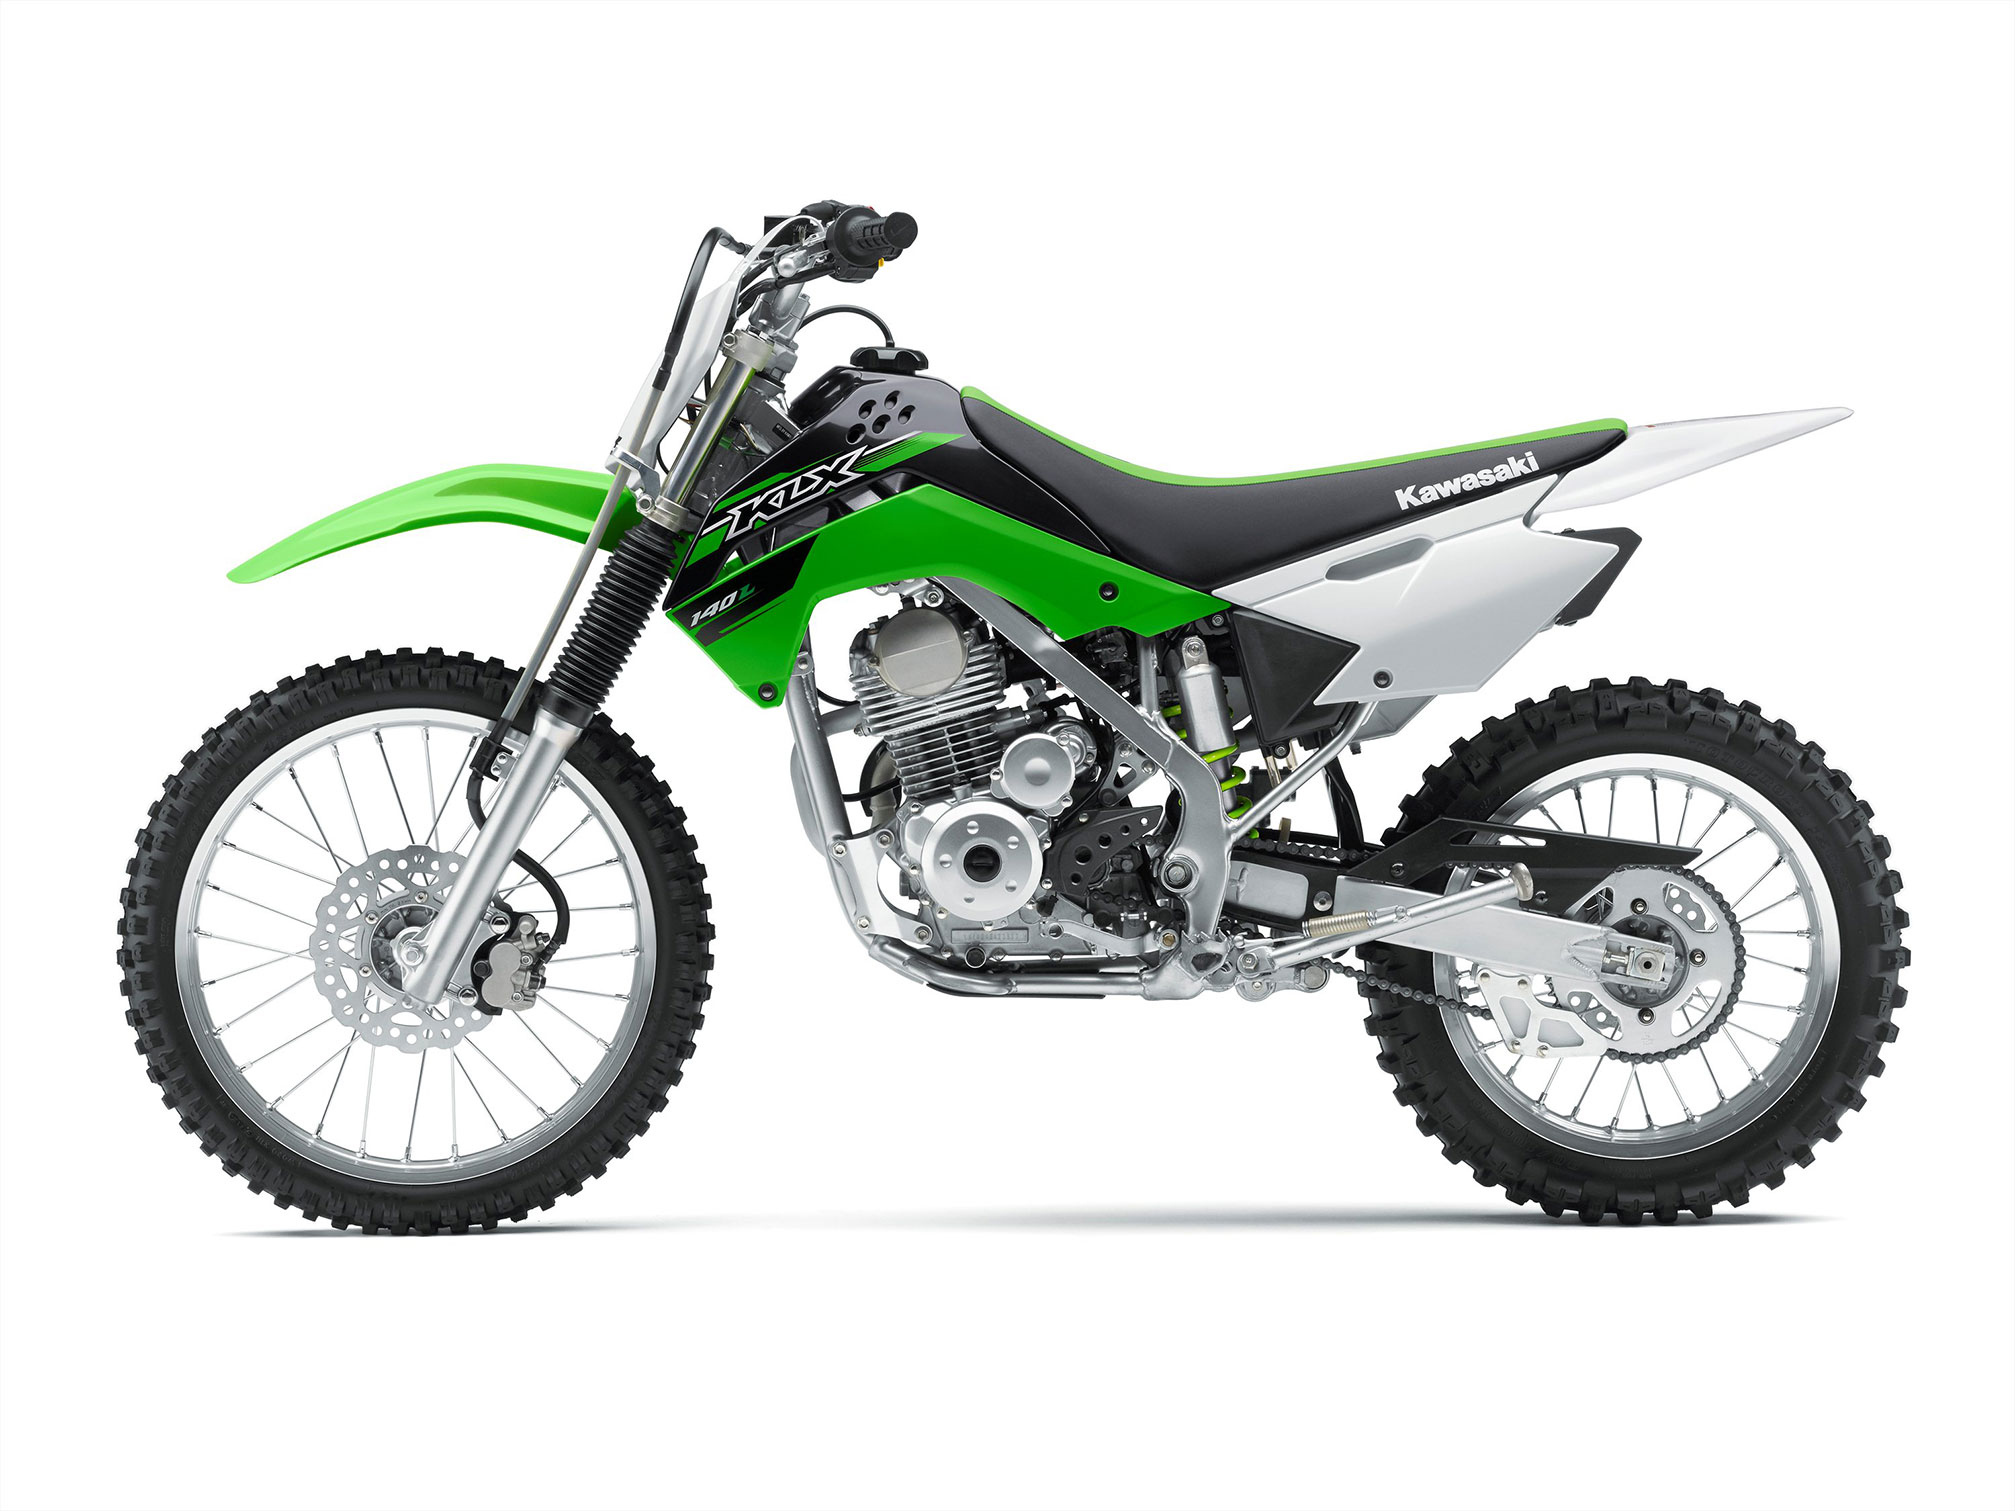 Kawasaki Klx 140 L Pics Specs And List Of Seriess By Year Wiring Diagram Images 86352